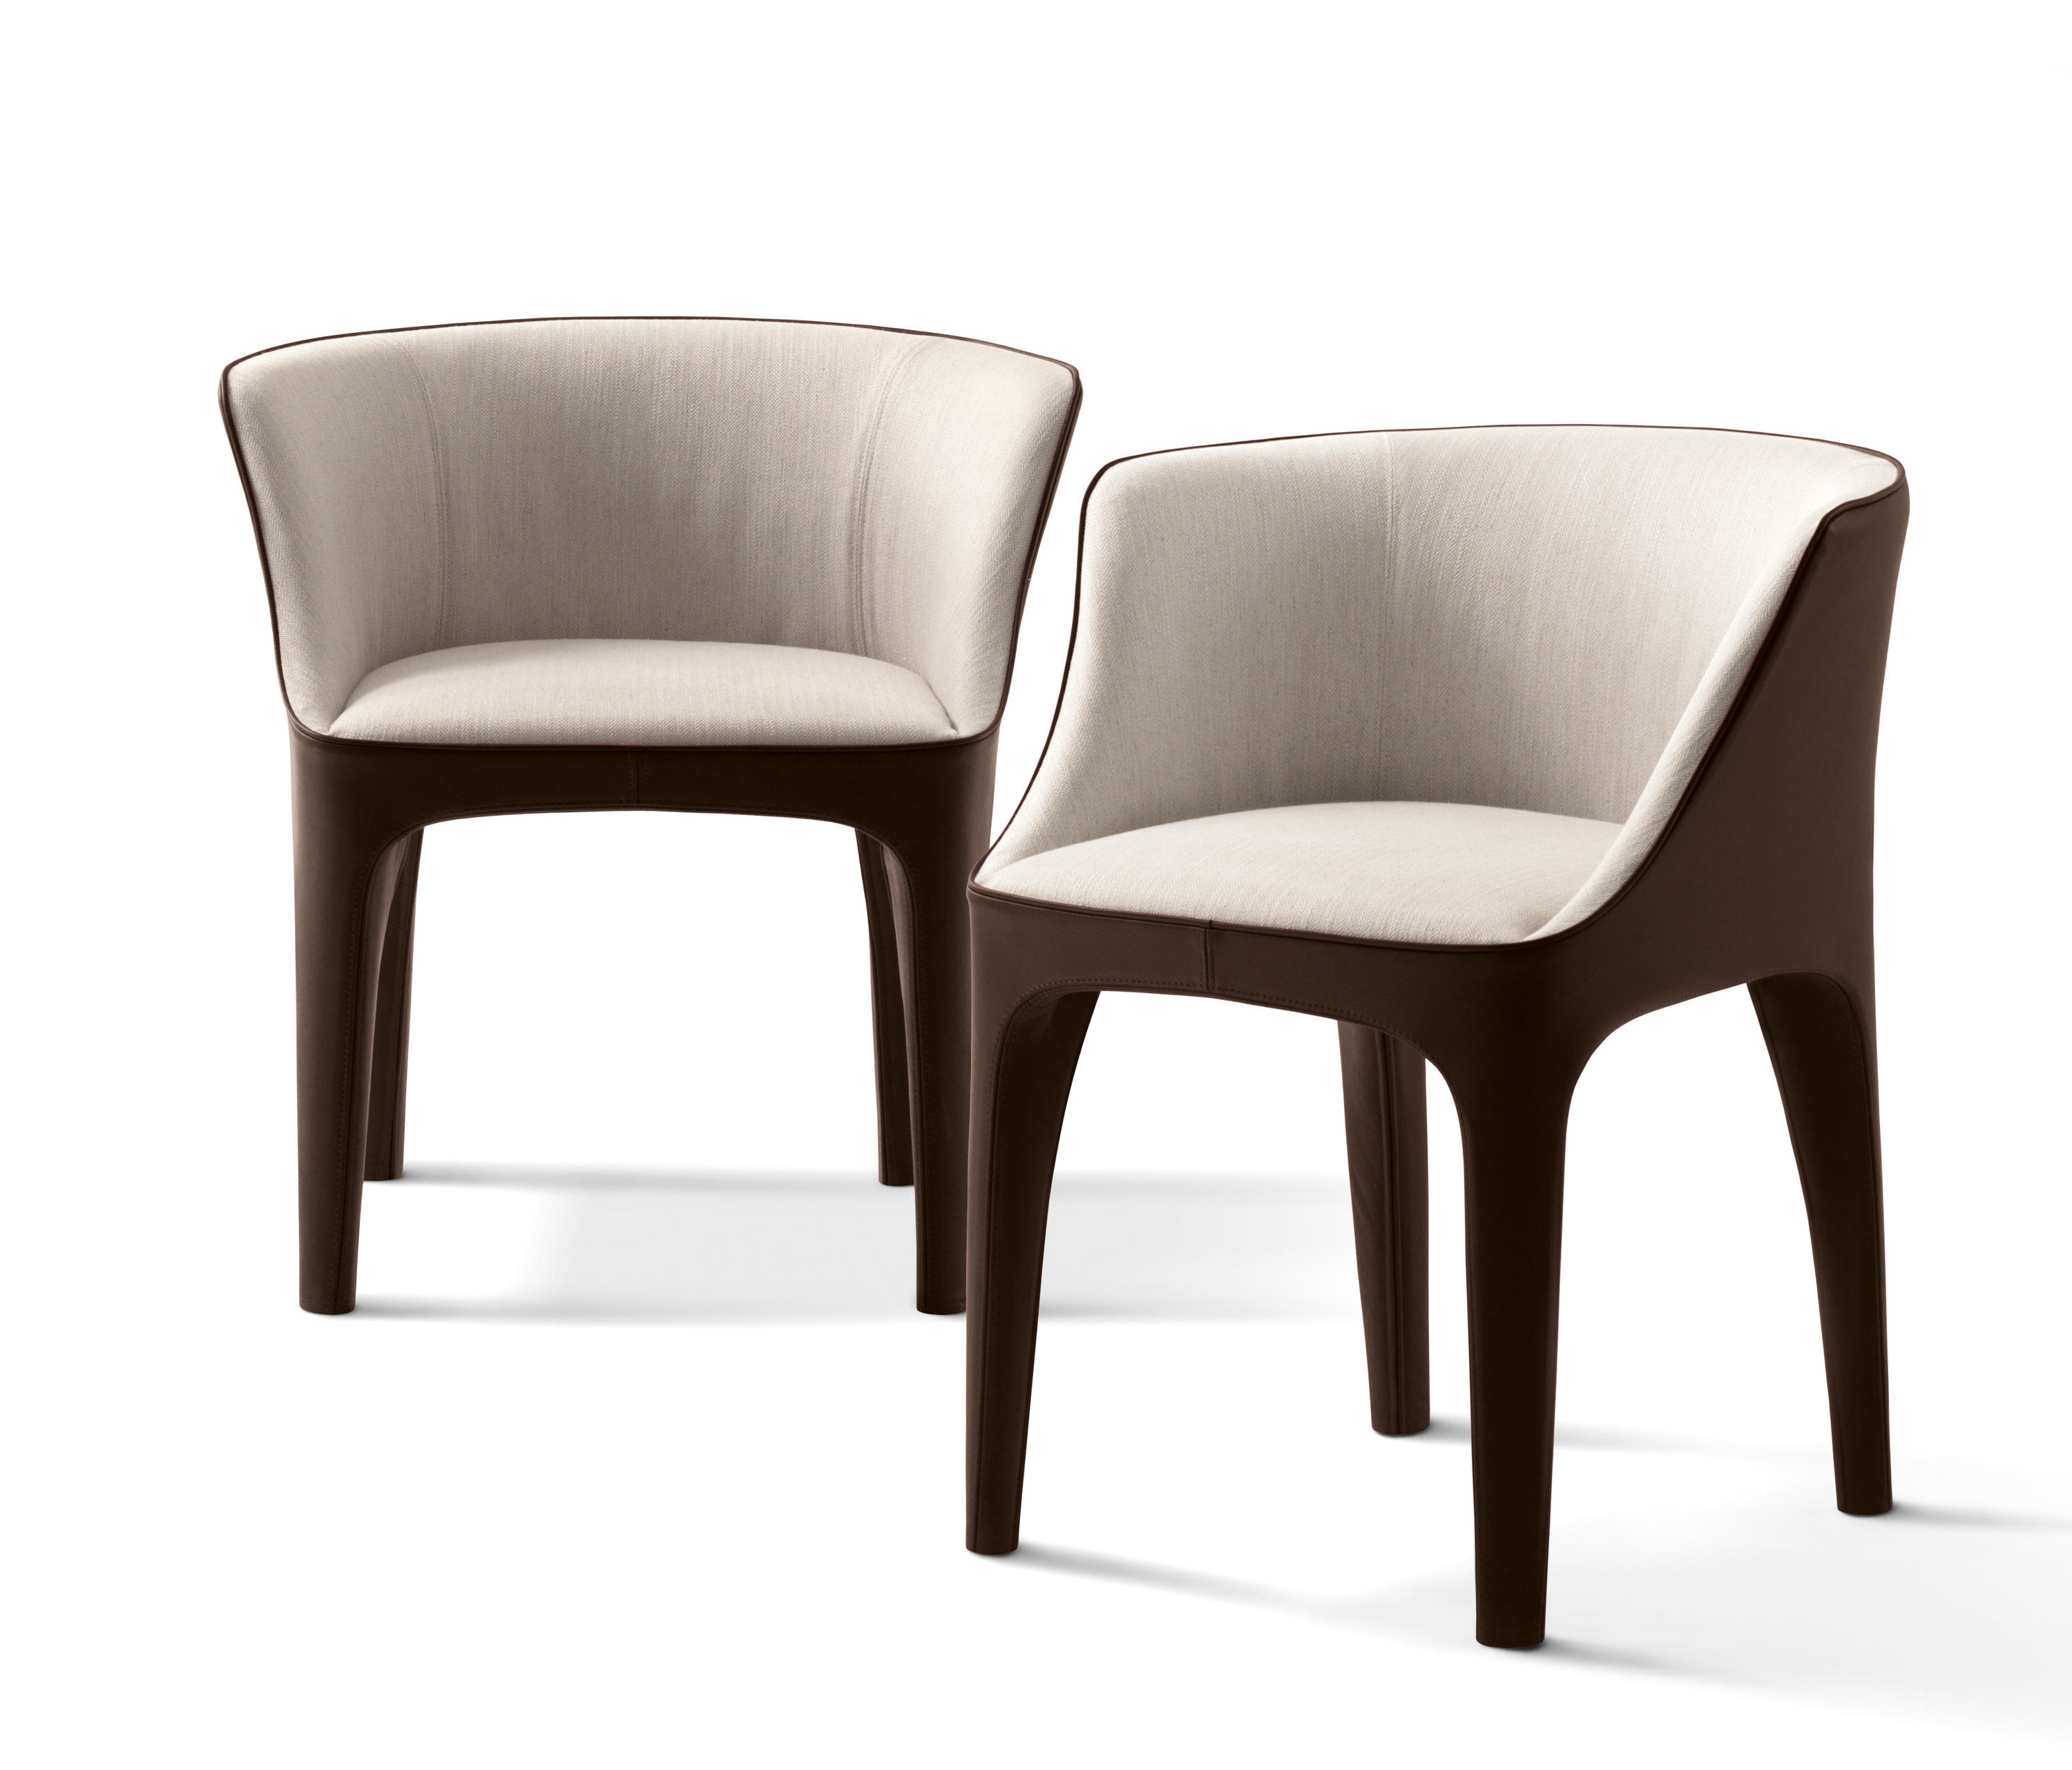 Diana small armchair visitors chairs side chairs from for Armchair furniture